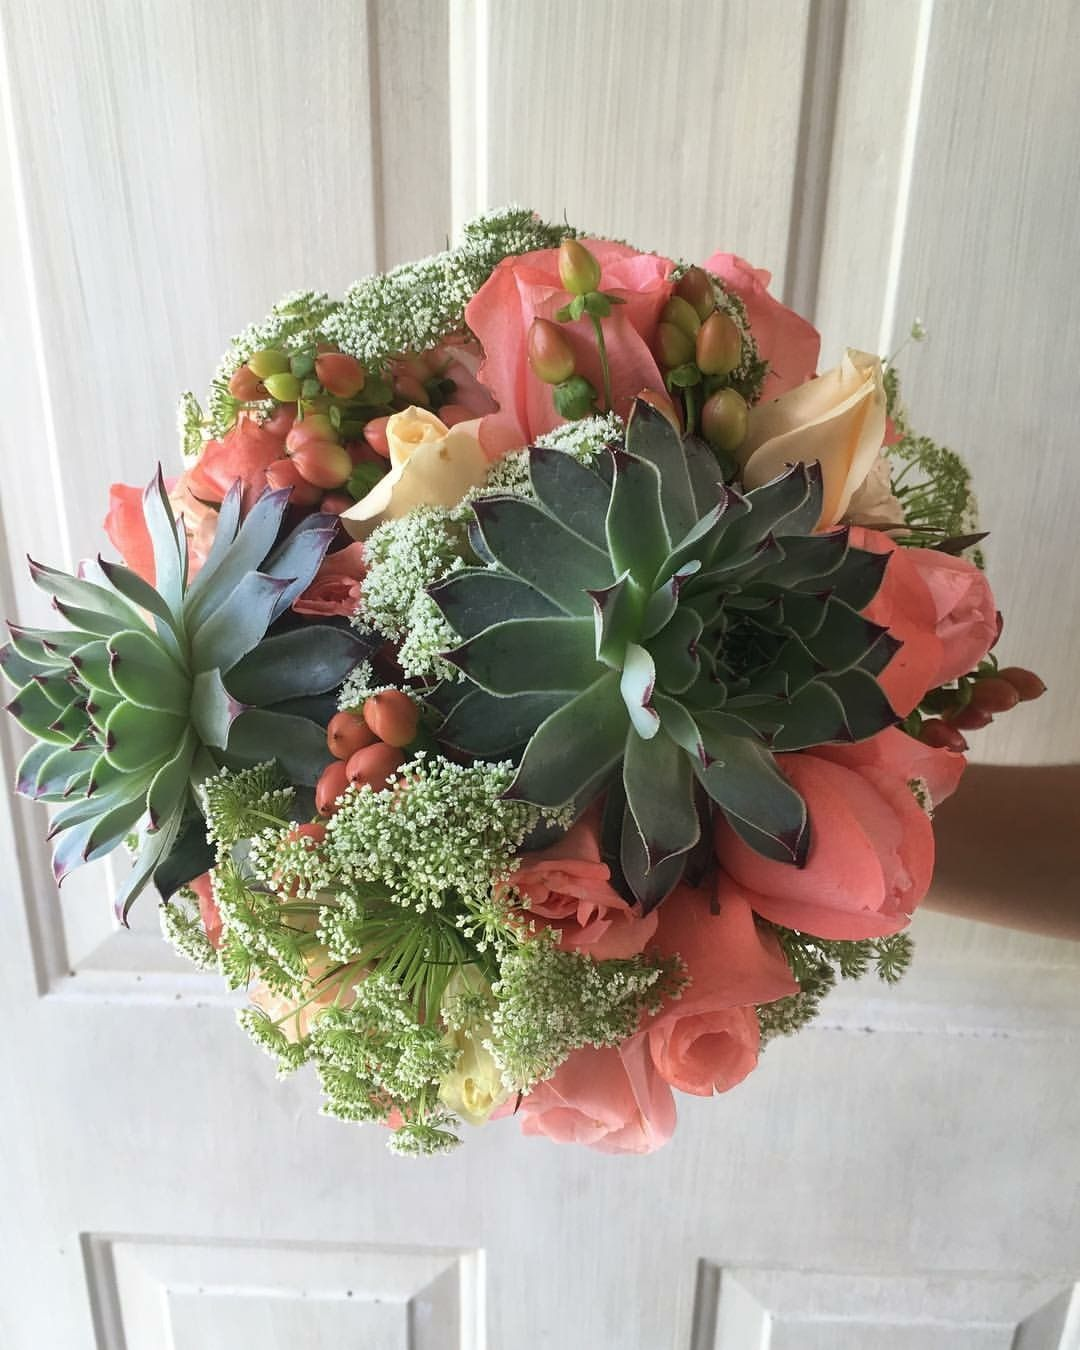 Cbr386 Weddings Riviera Maya Coral And White Flowers With Succulents